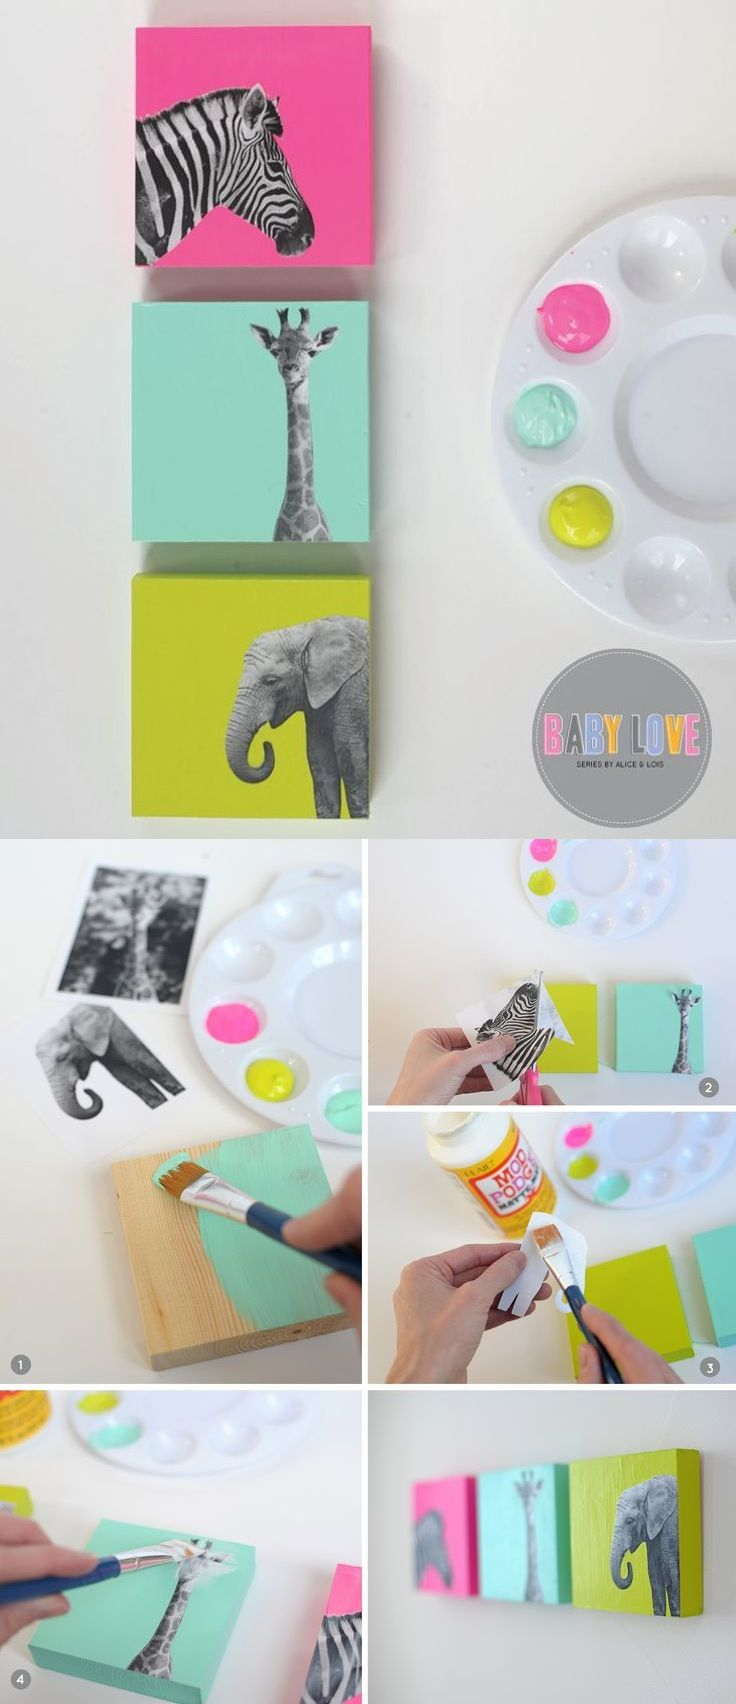 Cute diy room decor pinterest mommo design  cute diy projects for kids  me  pinterest  craft